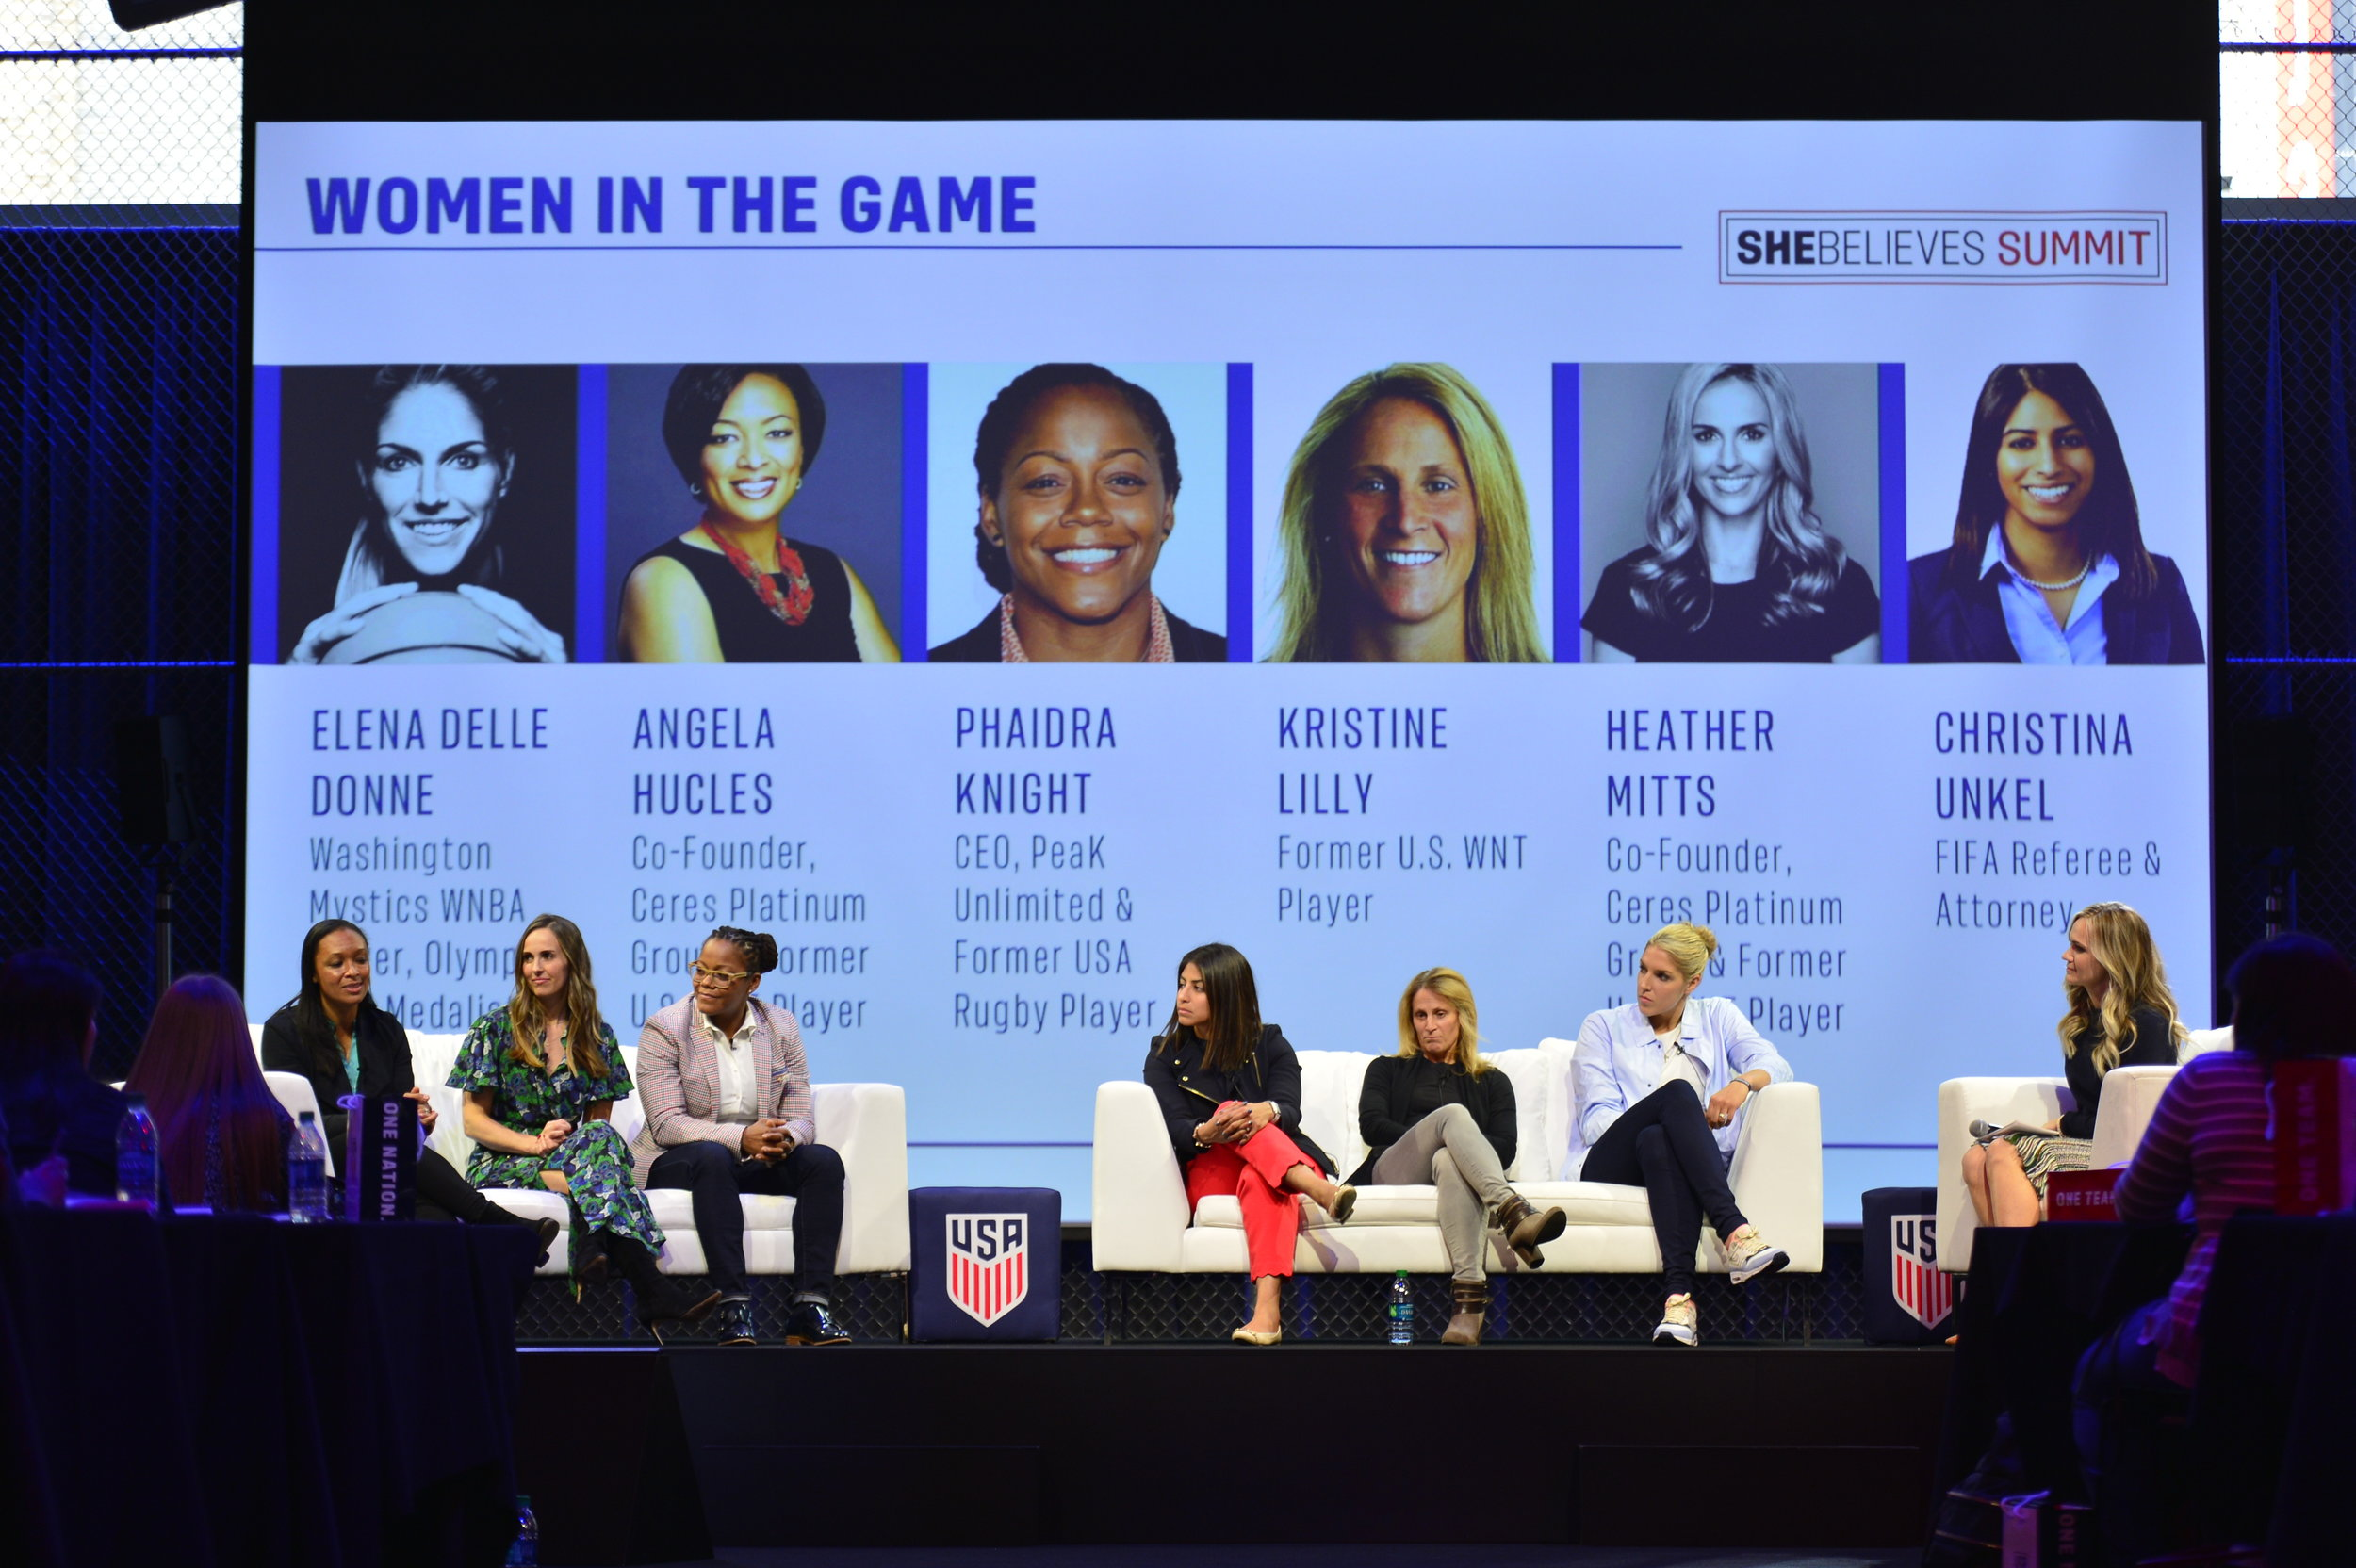 The Women in the Game panel consisting of Angela Hucles (Co-Founder of Ceres Platinum Group and former U.S. WNT player), Heather Mitts (Co-Founder of Ceres Platinum Group and former U.S. WNT player), Phaidra Knight (CEO of Peak Unlimited), Christina Unkel (FIFA Referee and Attorney), Kristine Lilly (former U.S. WNT player), and Elena Della Donne (WNBA player and Olympic Gold Medalist), close out the day speaking about how they put their inspiration into practice on and off the field.